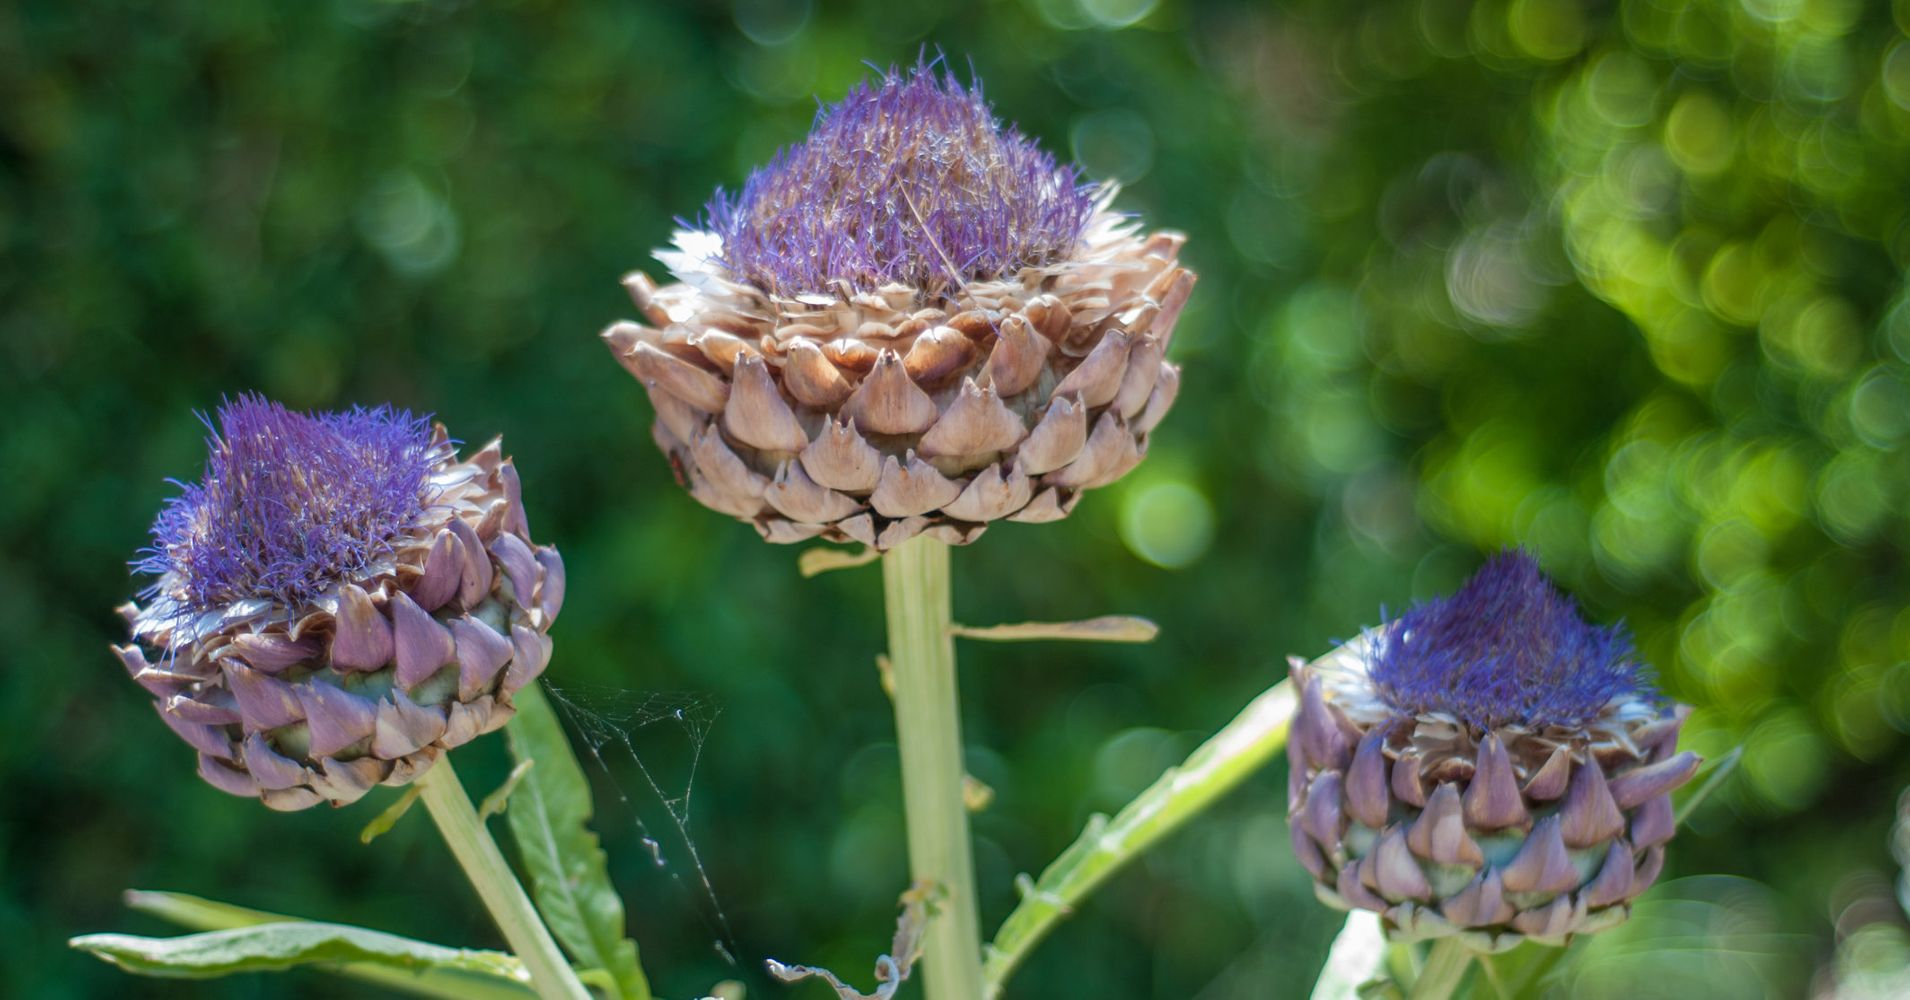 Artichokes are actually flowers and heres proof huffpost izmirmasajfo